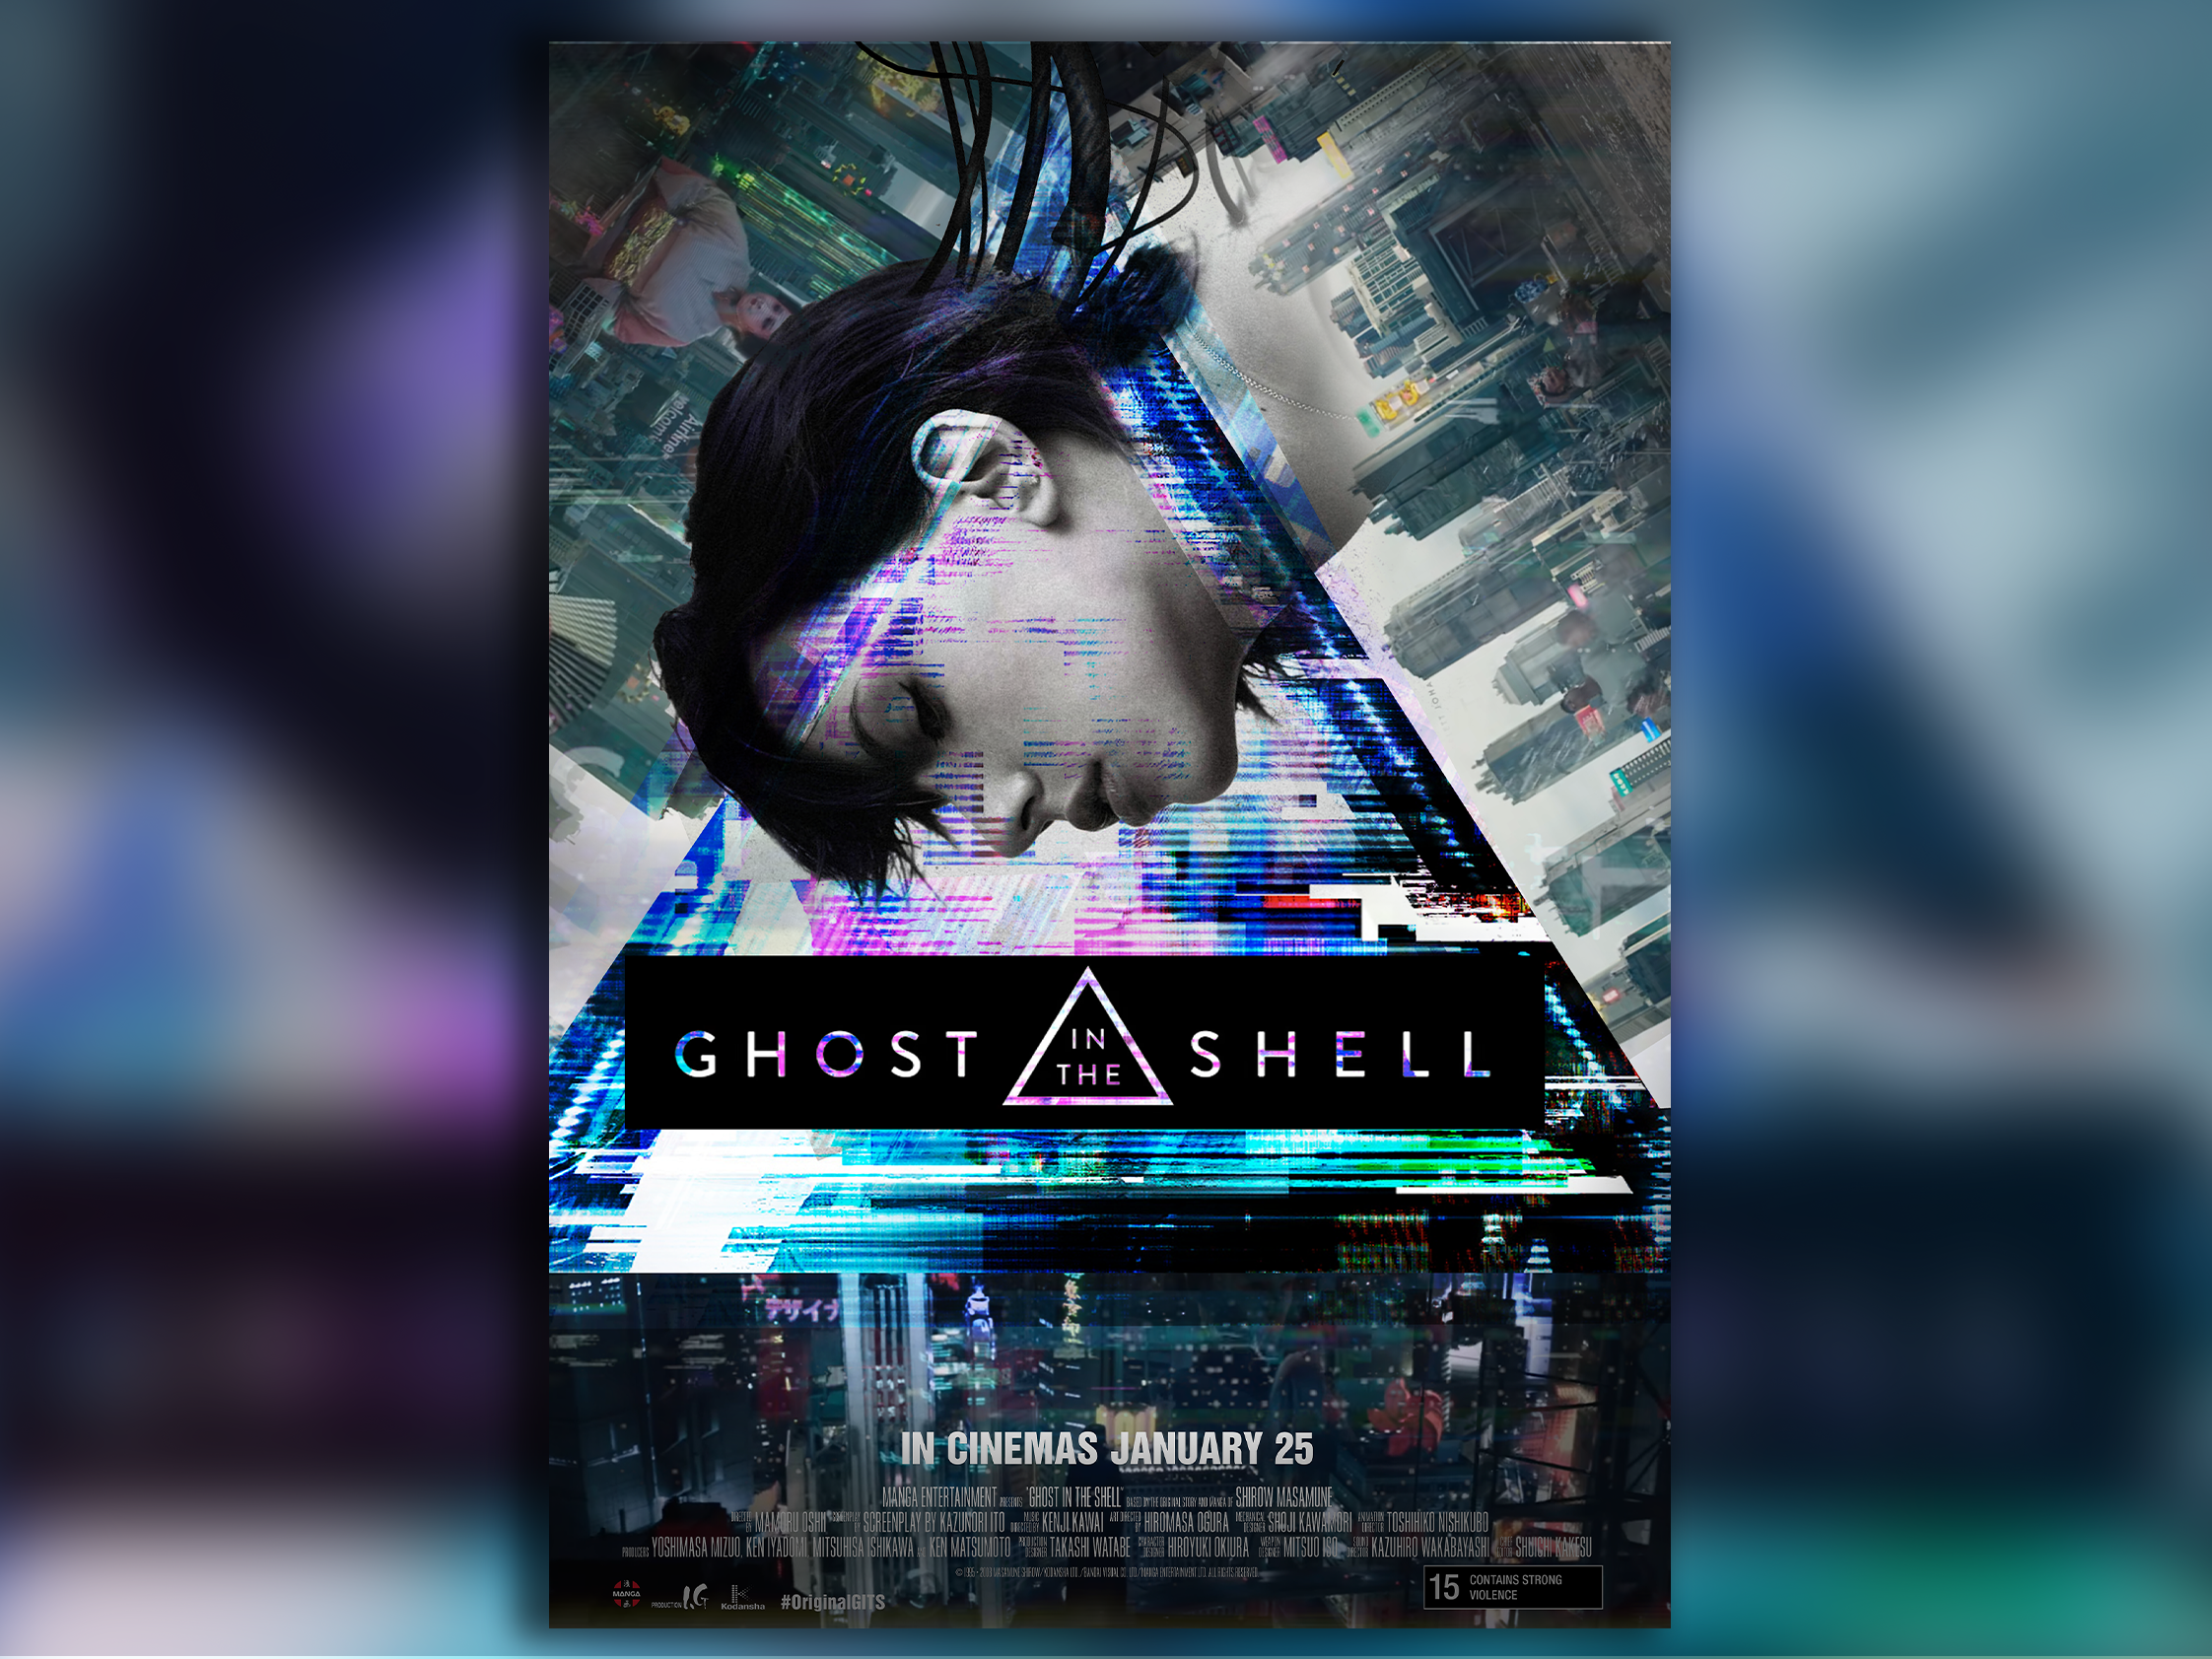 Ghost In The Shell Movie Poster By Tom Woodward On Dribbble